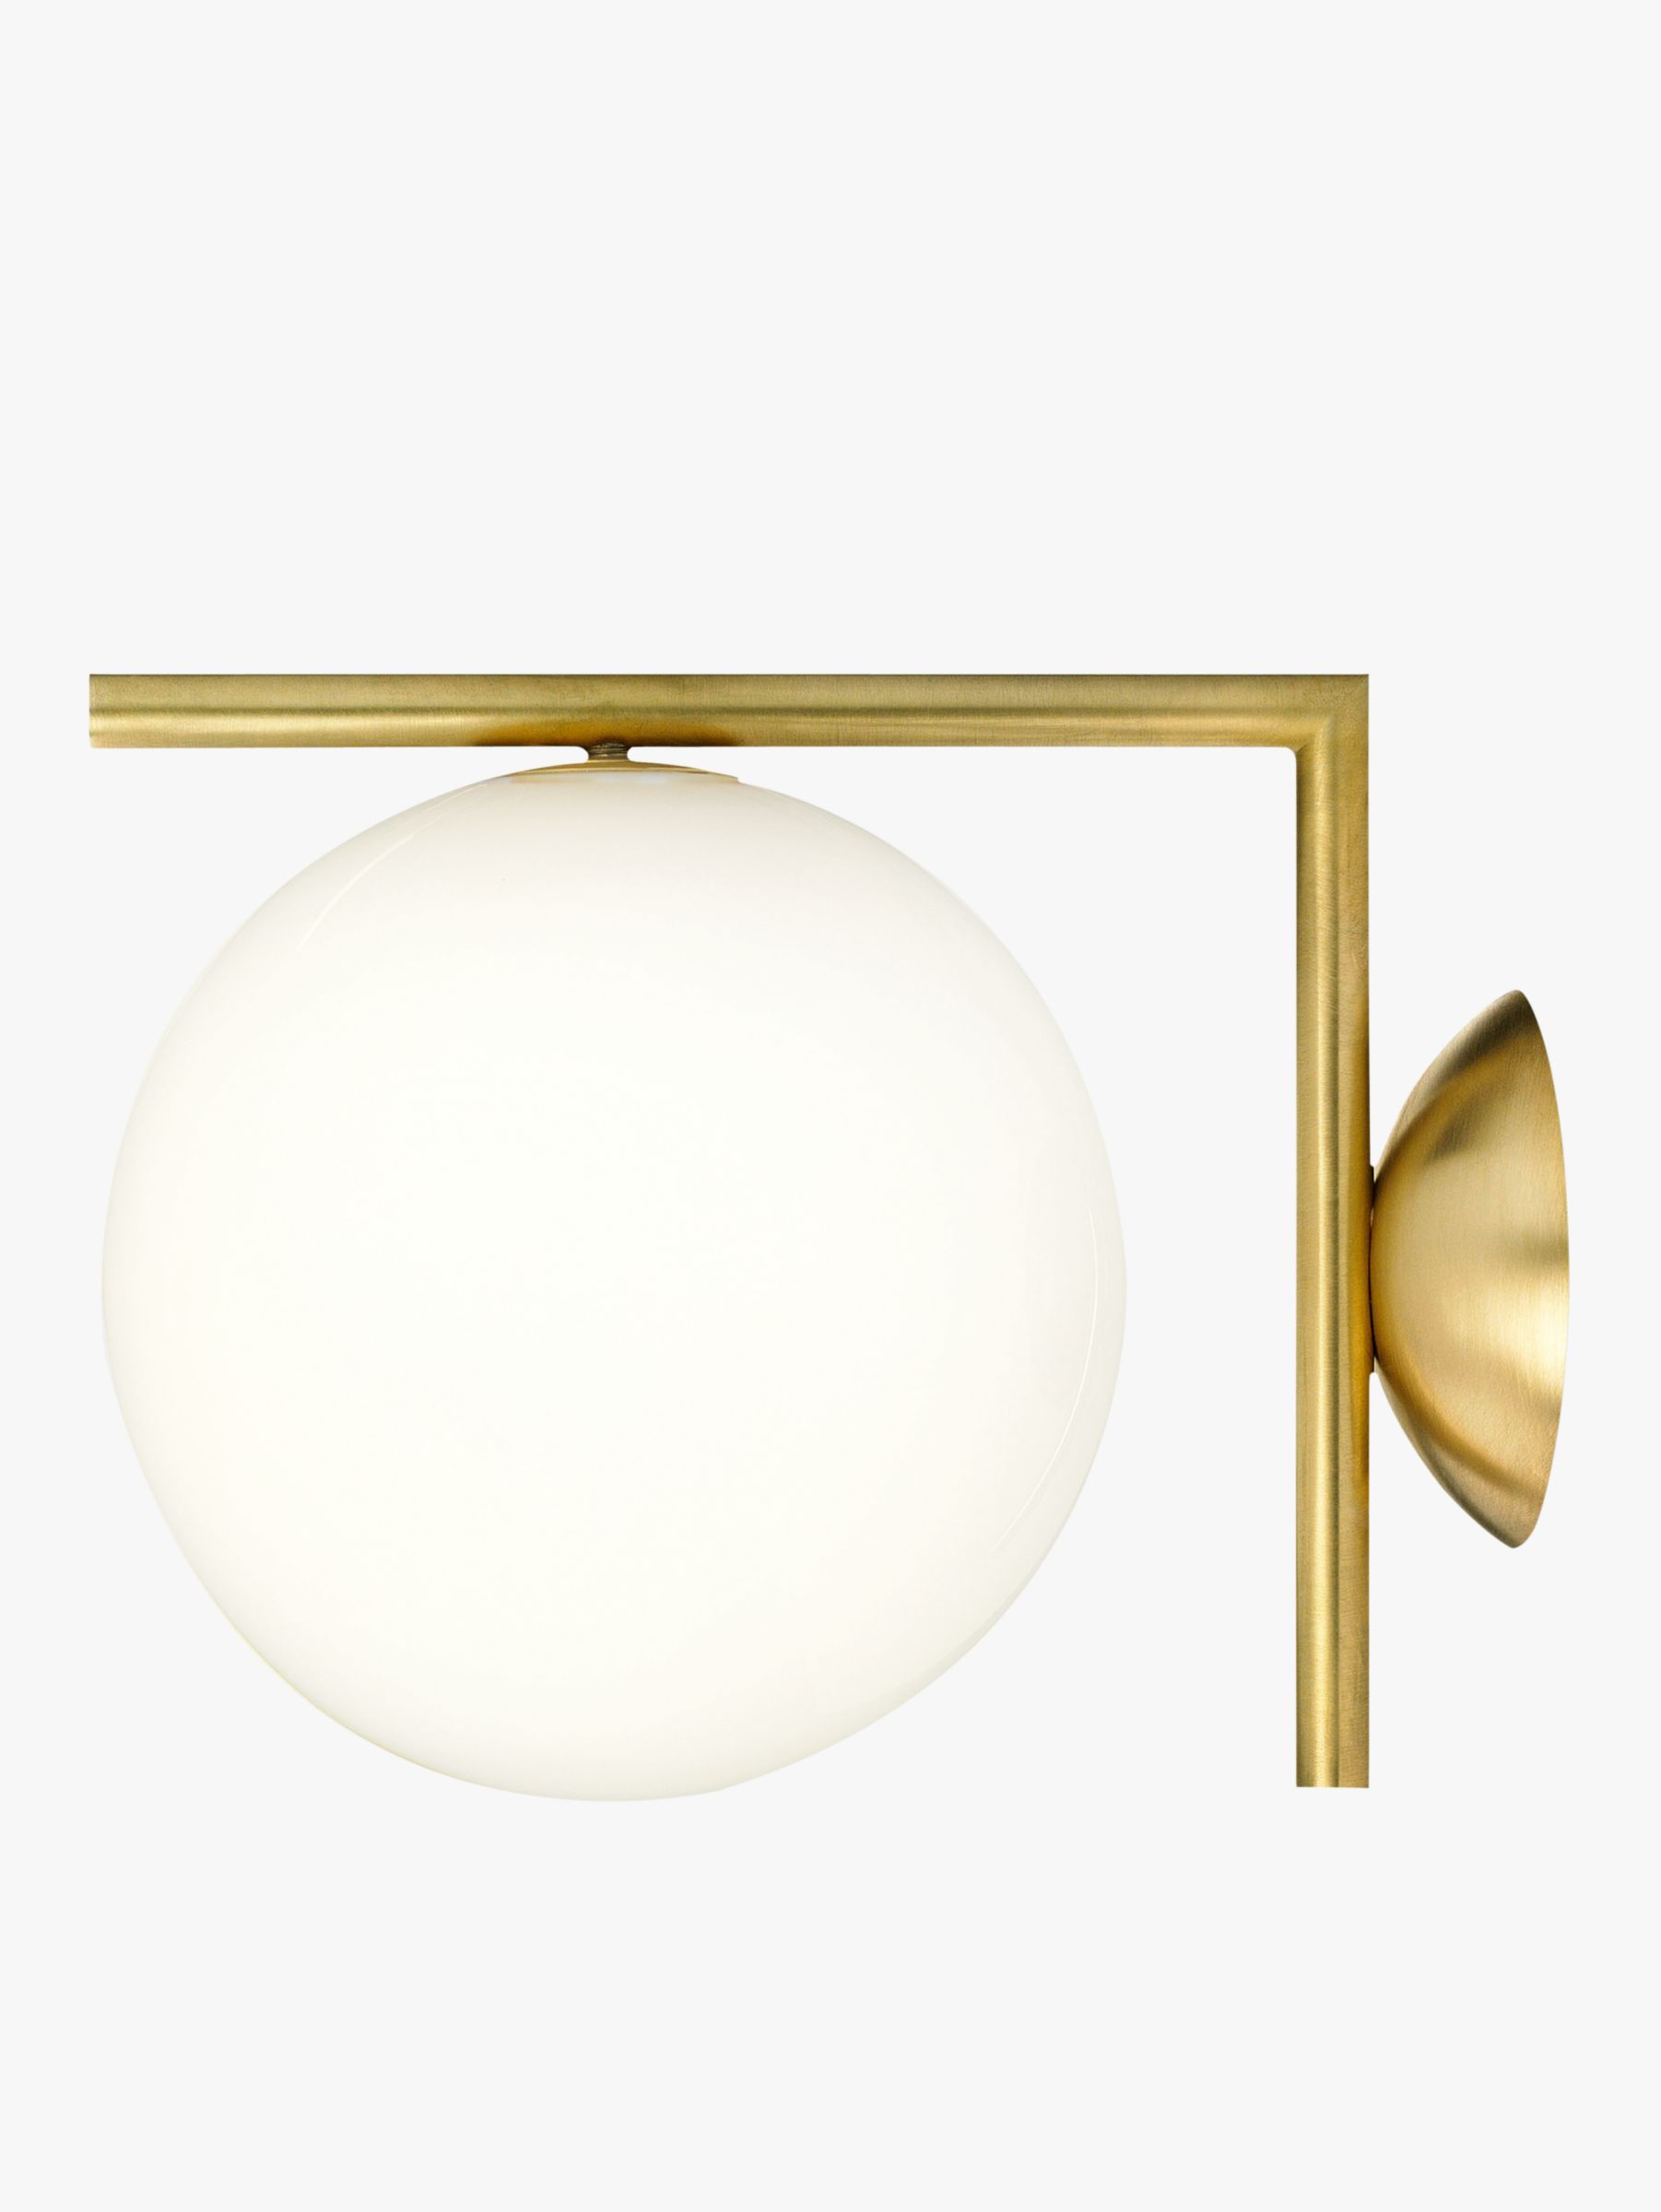 Buy Flos IC C/W1 Wall Light, 20cm, Brushed Brass John Lewis